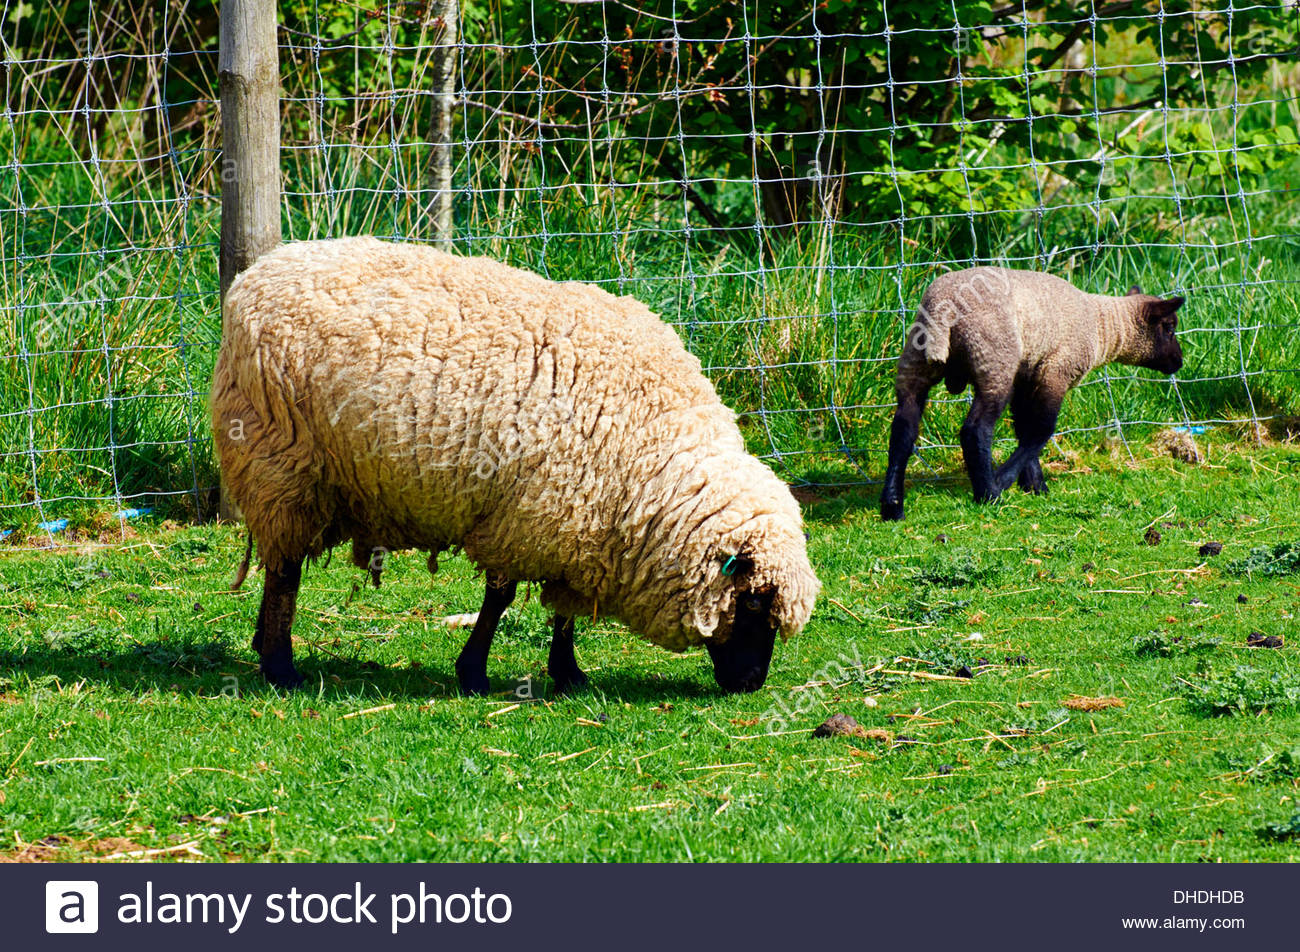 large white woolly sheep grazing alone in a grassy field and a lamb with black markings - Stock Image